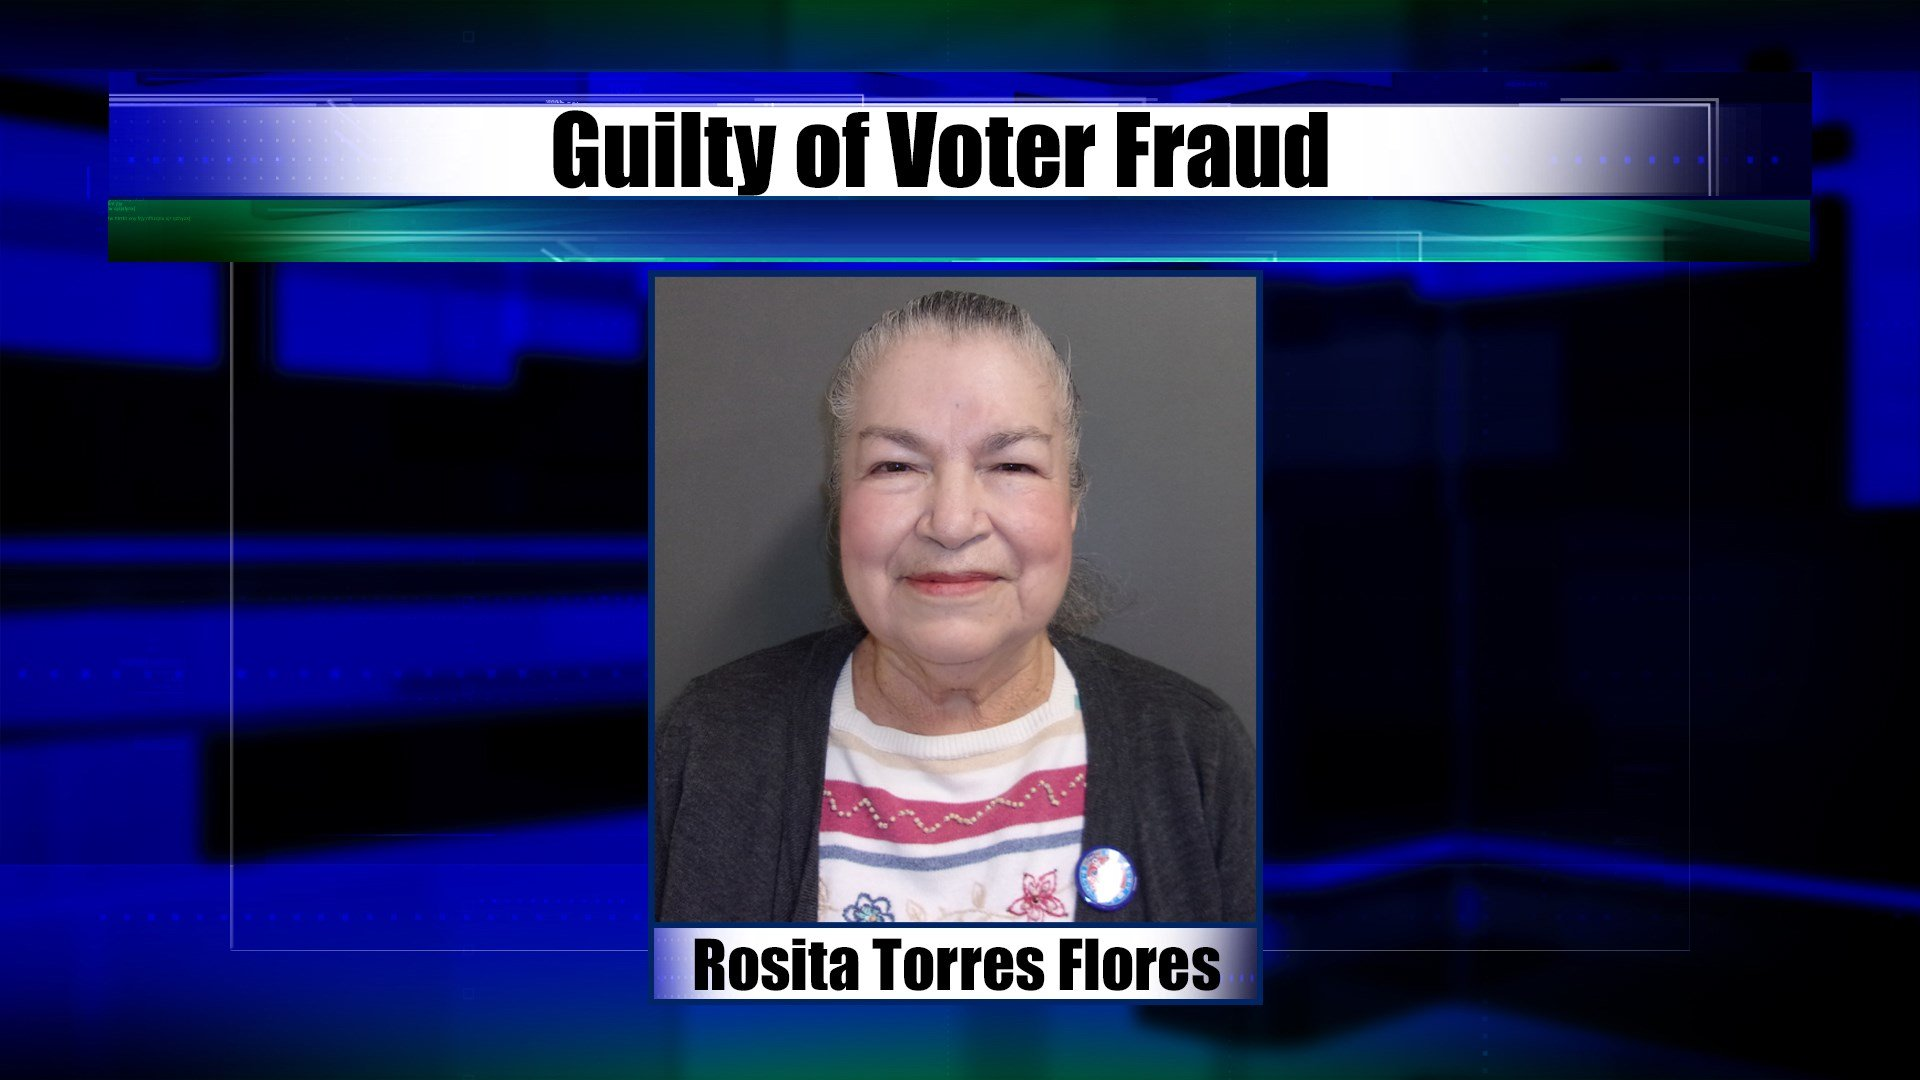 Rosita Torre Flores pleaded guilty to voter fraud charges